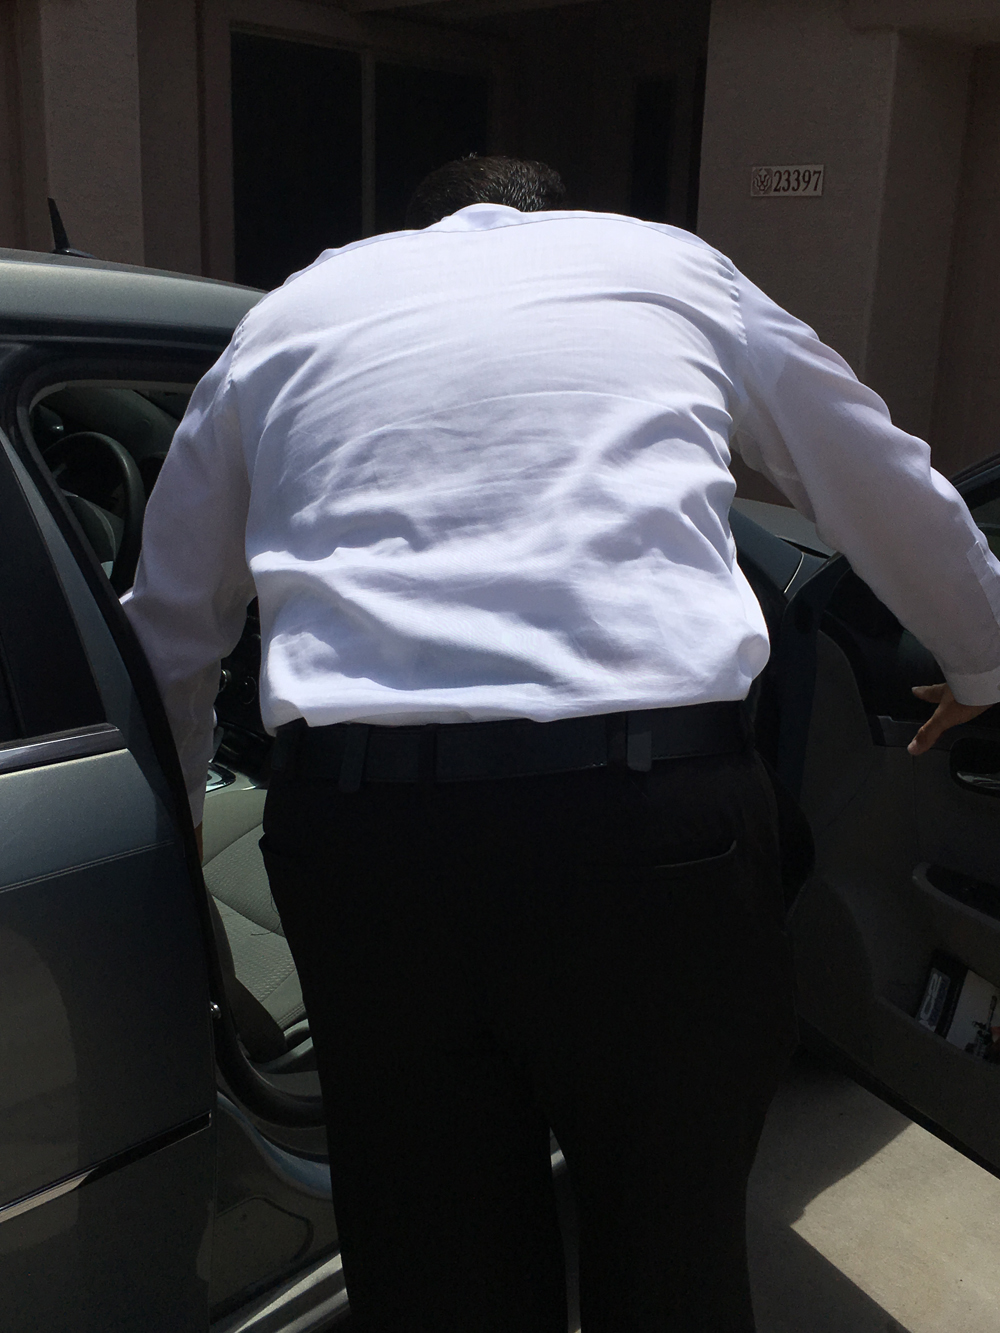 Man wearing a white dress shirt while concealing a pistol